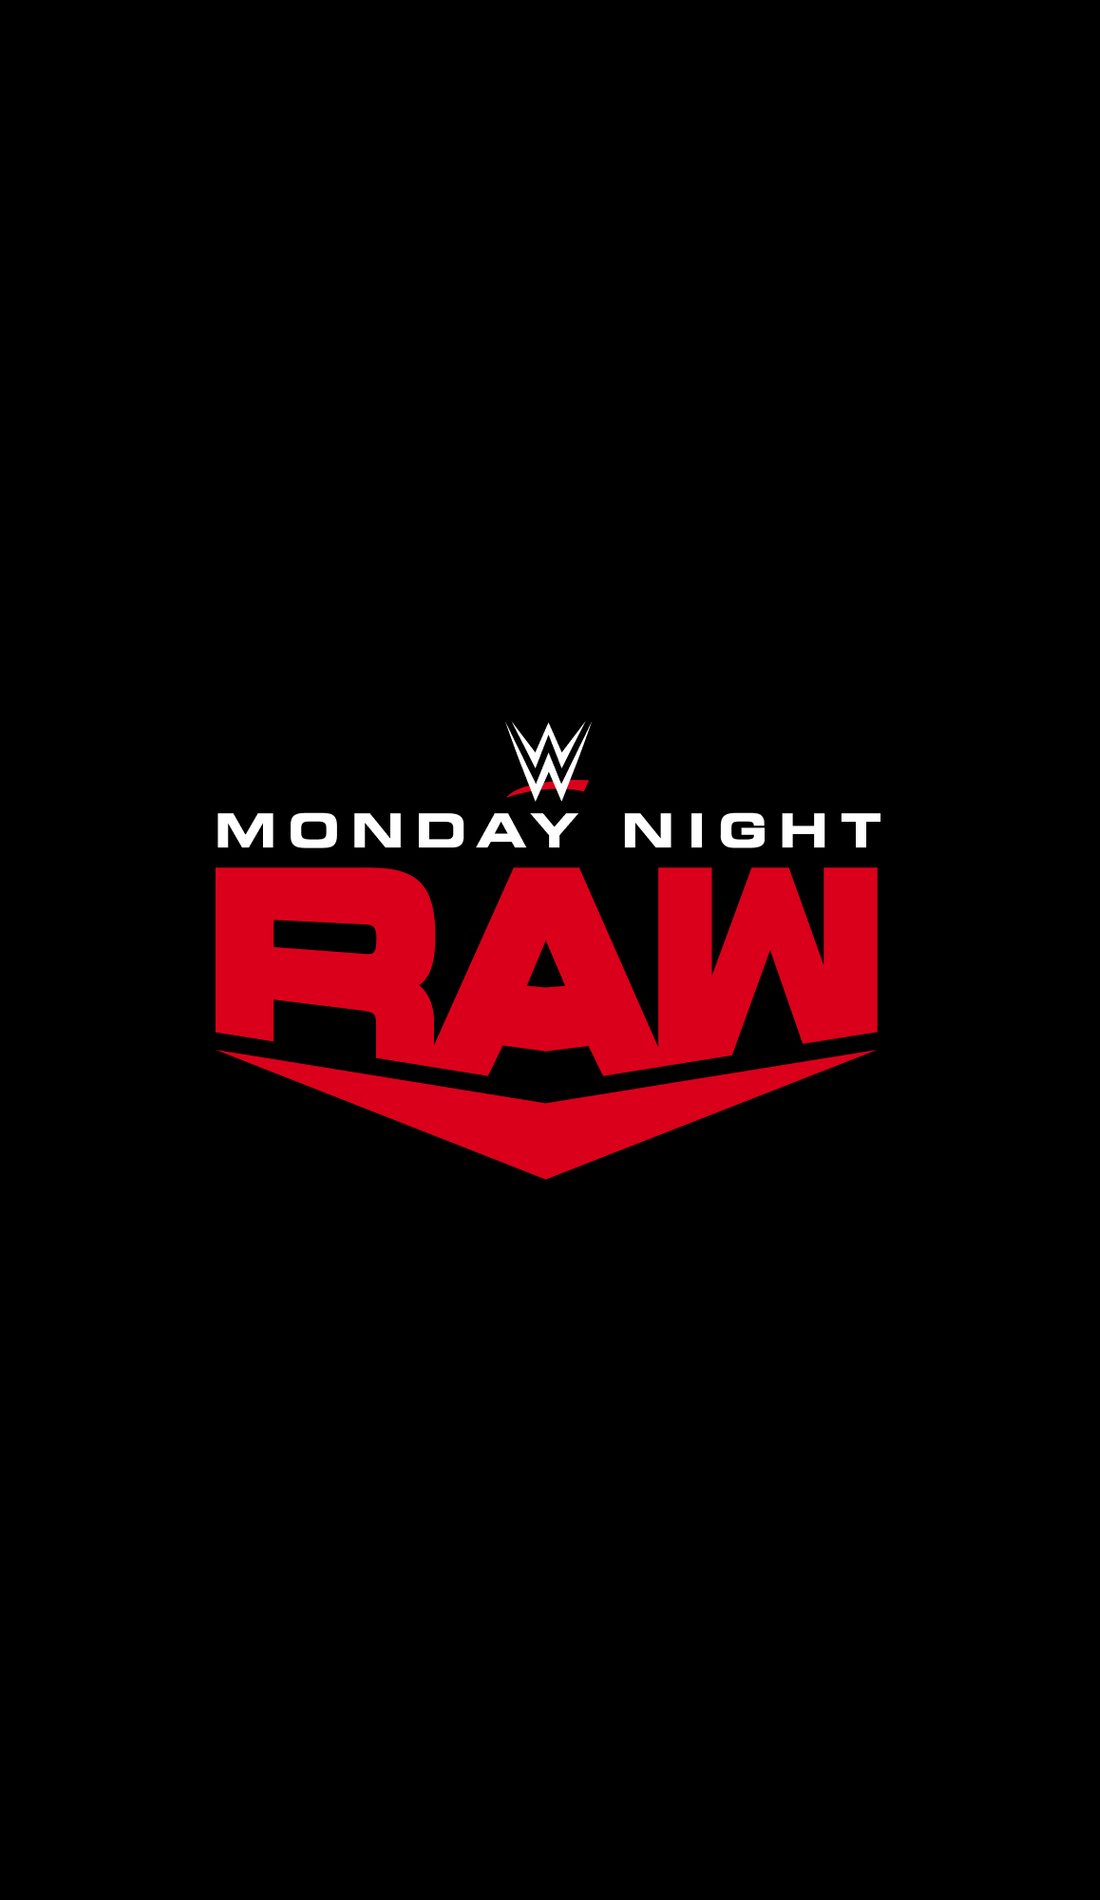 A WWE Raw live event